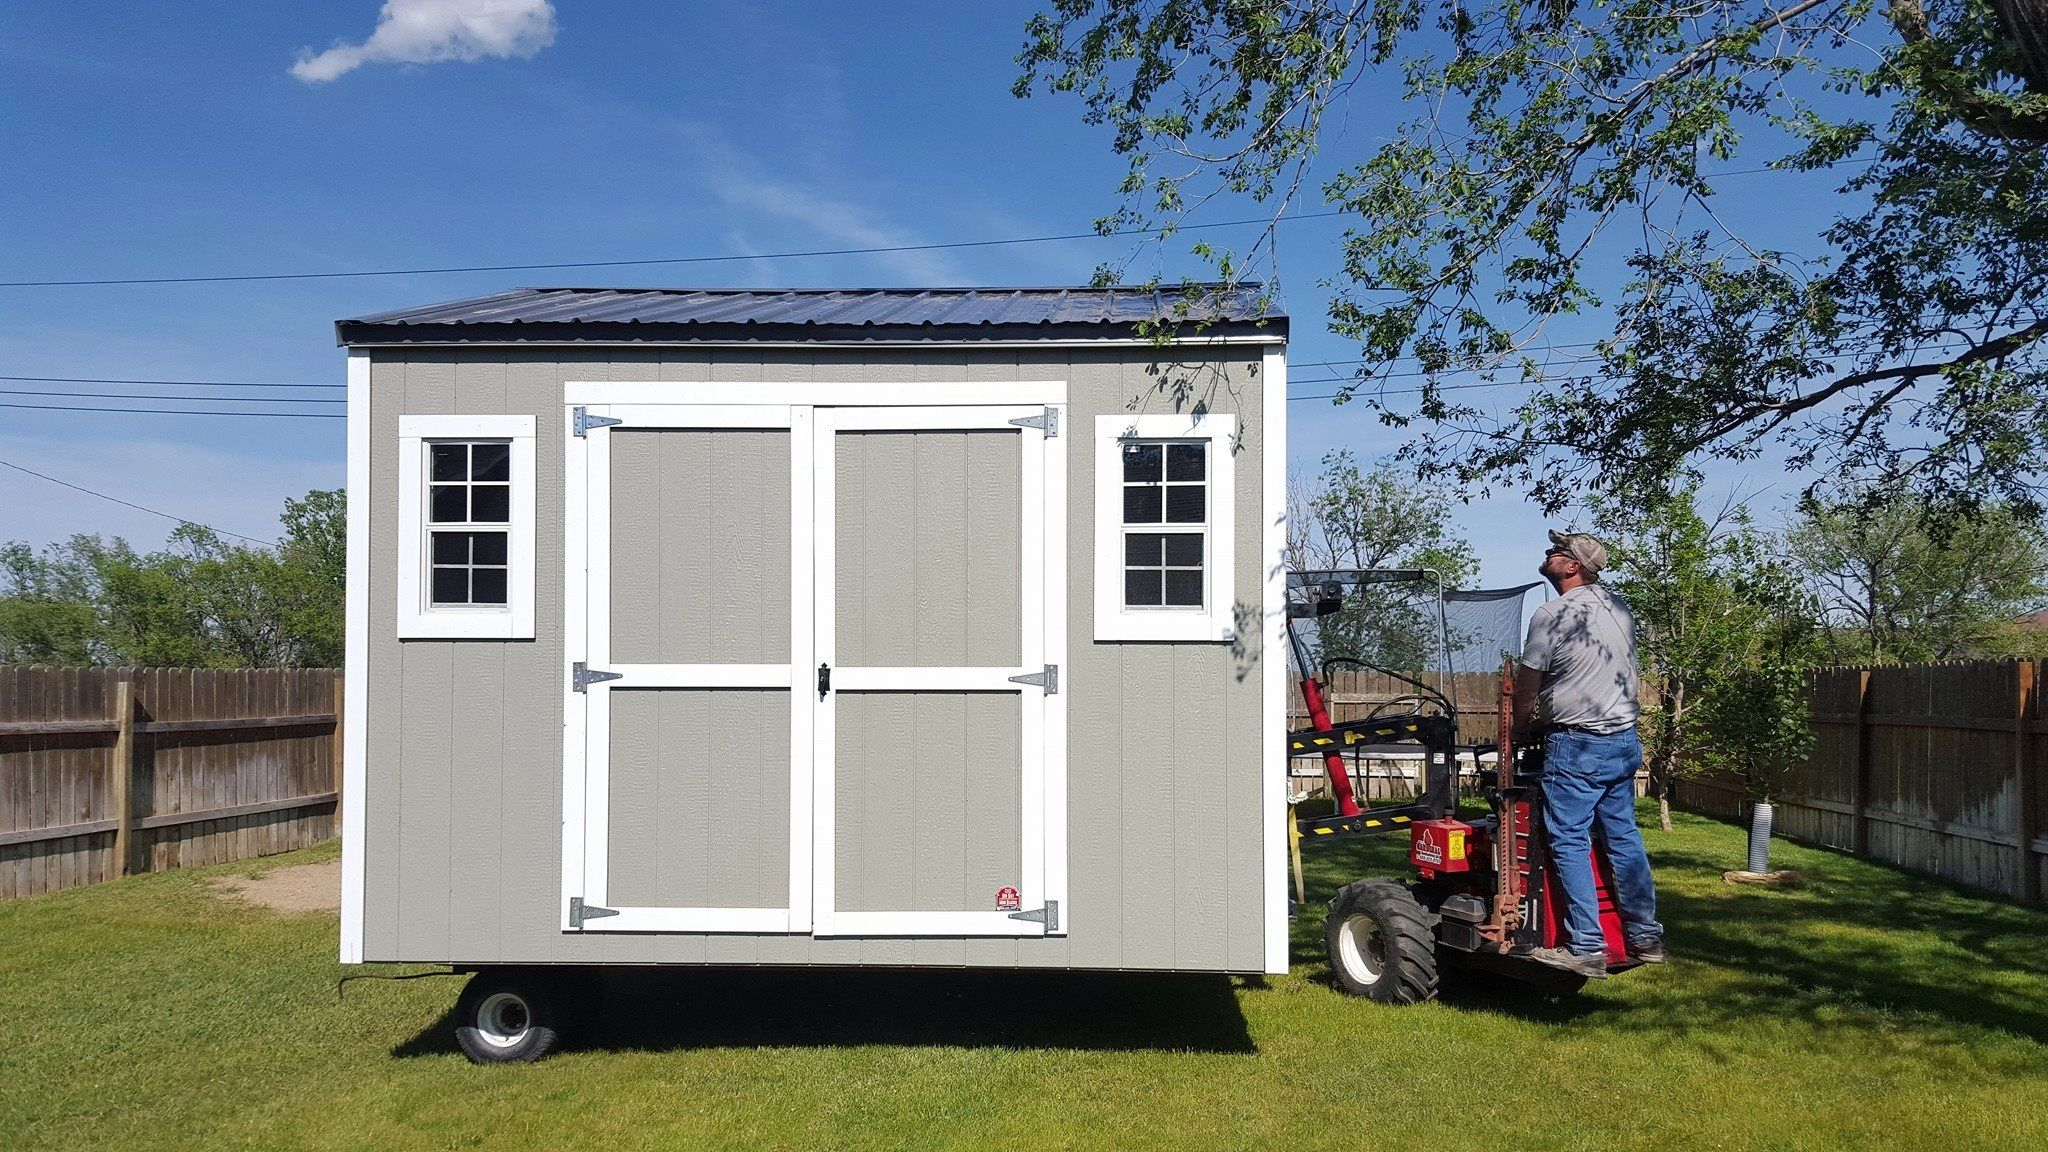 "{""blocks"":[{""key"":""1nh8h"",""text"":""Amazing Service!  Big Sky Mini Barns delivers.  We will set your shed exactly where you want it!  We deliver to western North Dakota, western South Dakota, Wyoming and Montana."",""type"":""unstyled"",""depth"":0,""inlineStyleRanges"":[],""entityRanges"":[],""data"":{}}],""entityMap"":{}}"